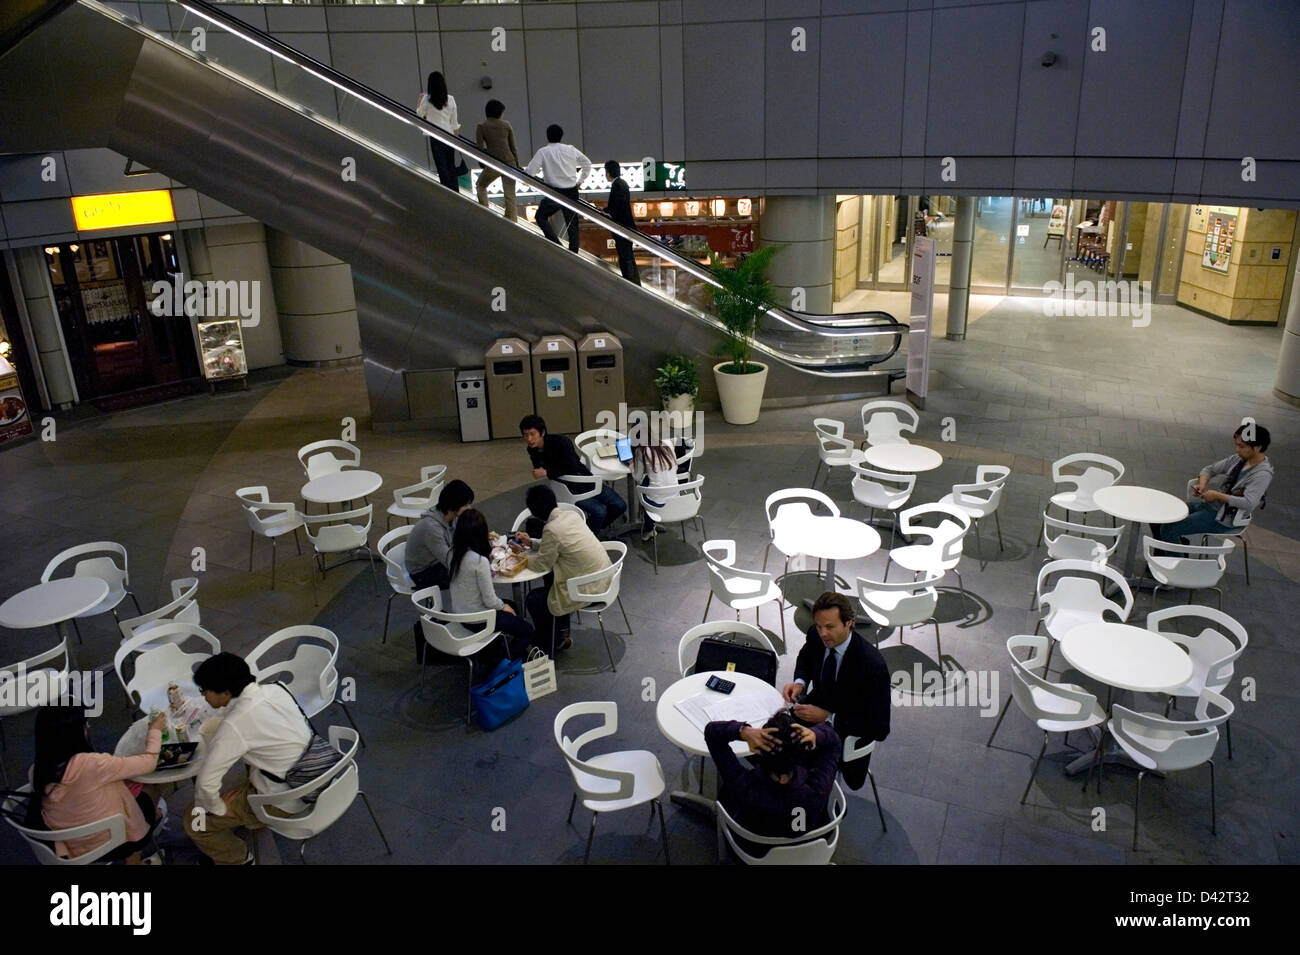 Casual waiting area at Roppongi Hills, the upscale residential and shopping complex in Roppongi, Tokyo. - Stock Image